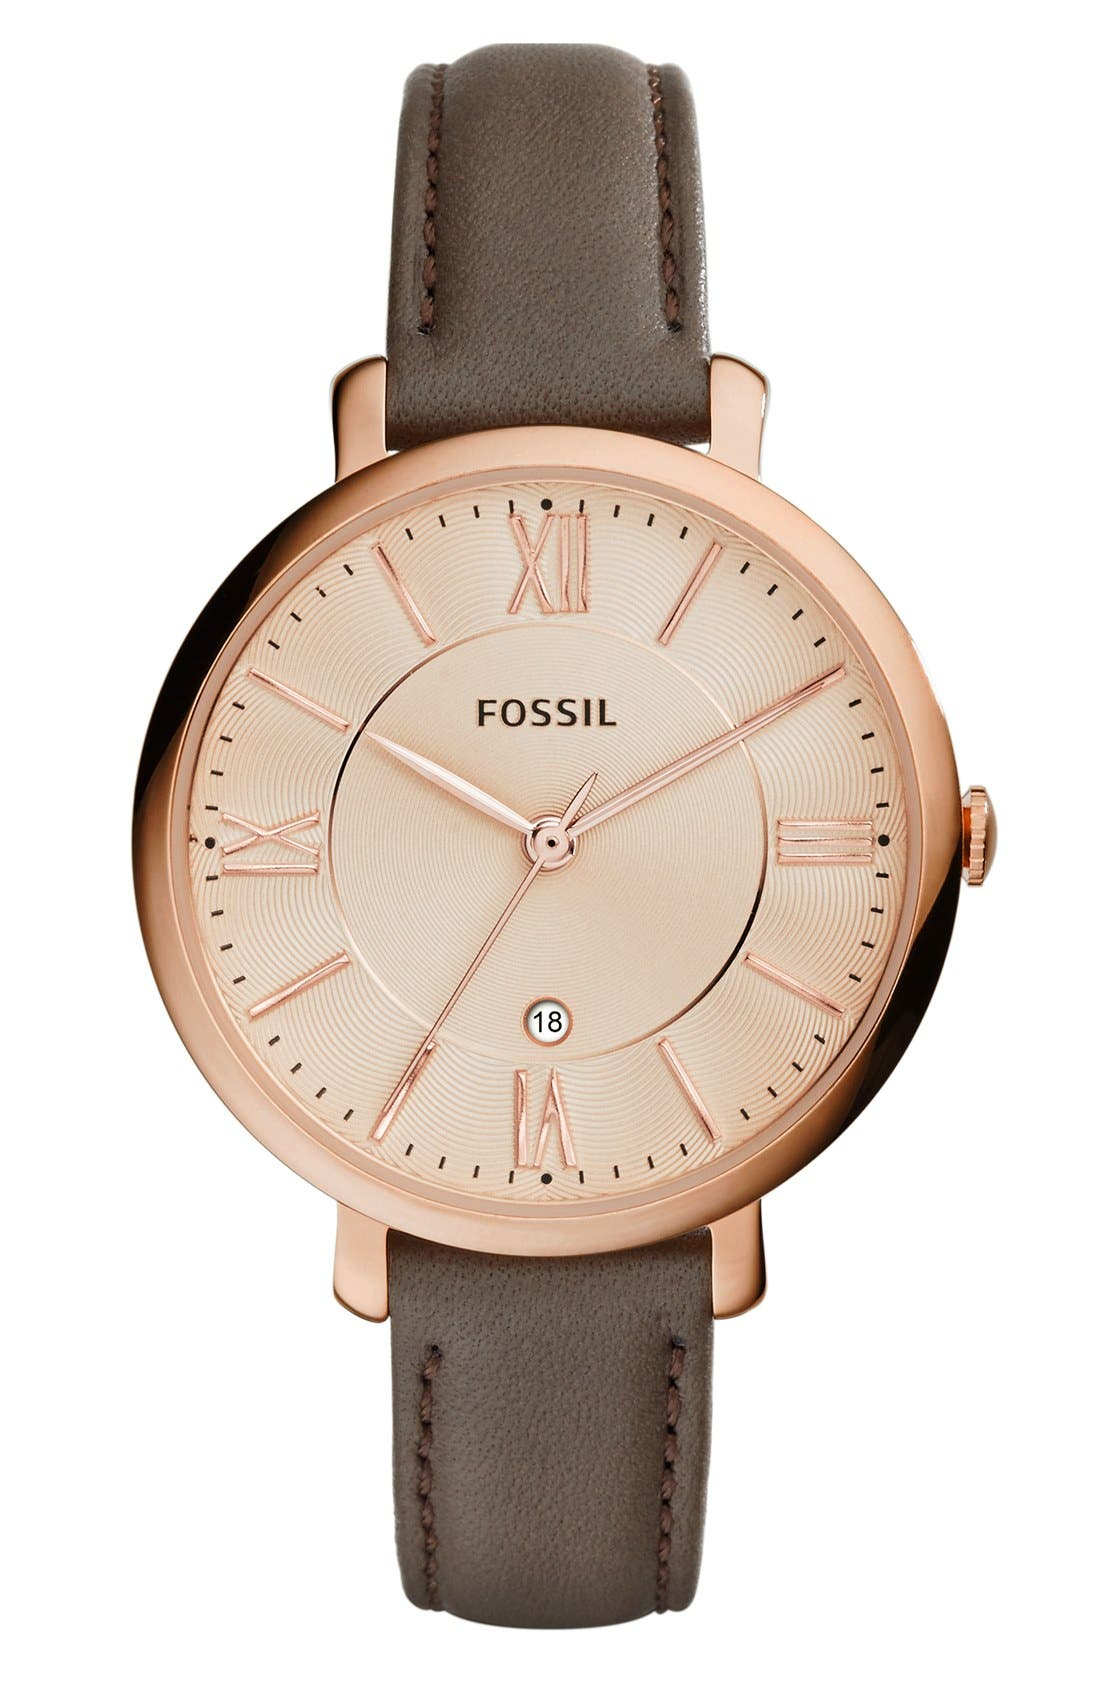 FOSSIL 'Jacqueline' Round Leather Strap Watch, 36mm, Main, color, IRON/ ROSE GOLD